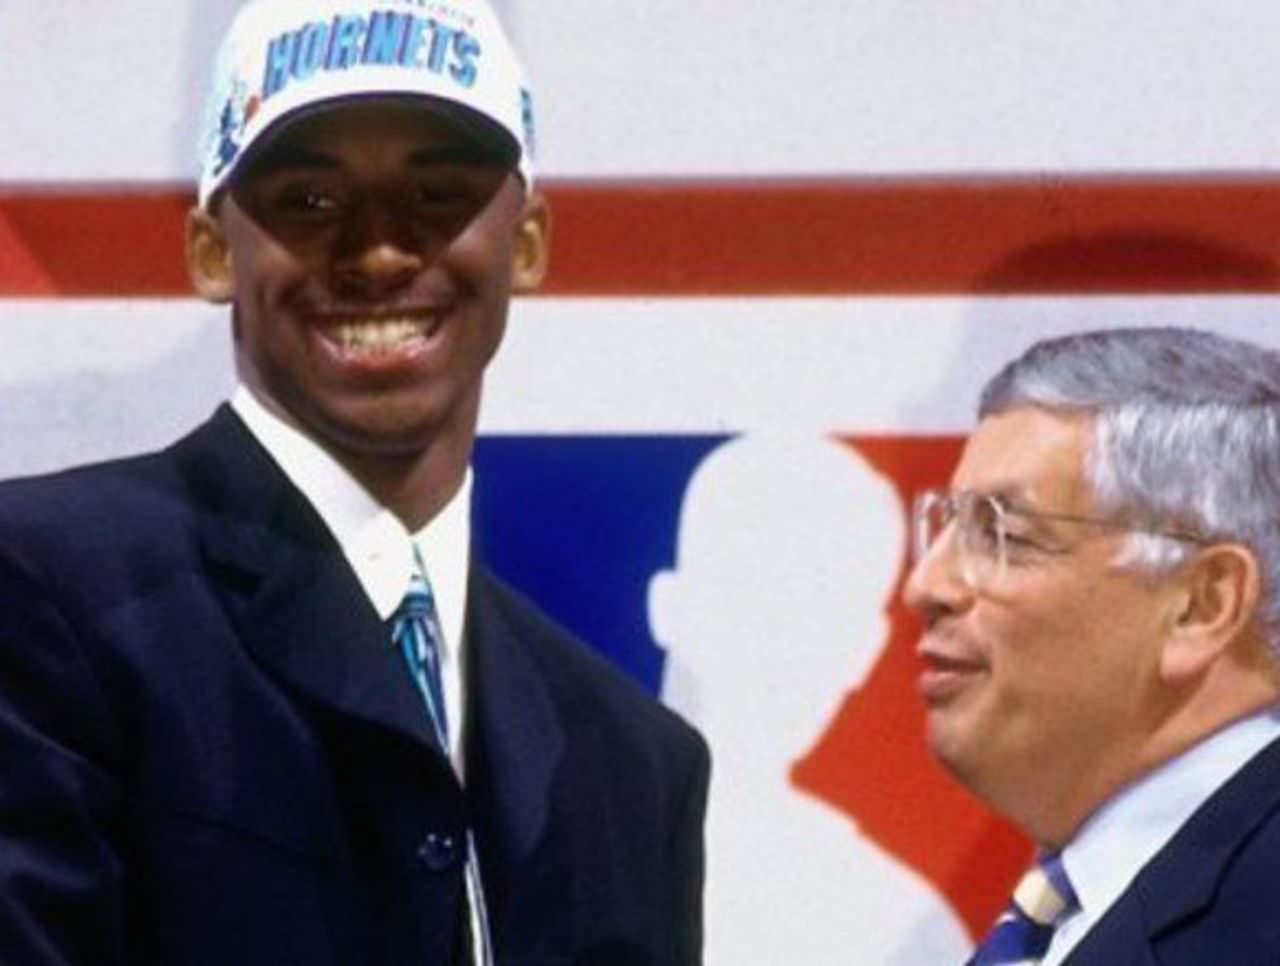 Kobe Bryant being drafted by Hornets (with Commissioner David Stern)